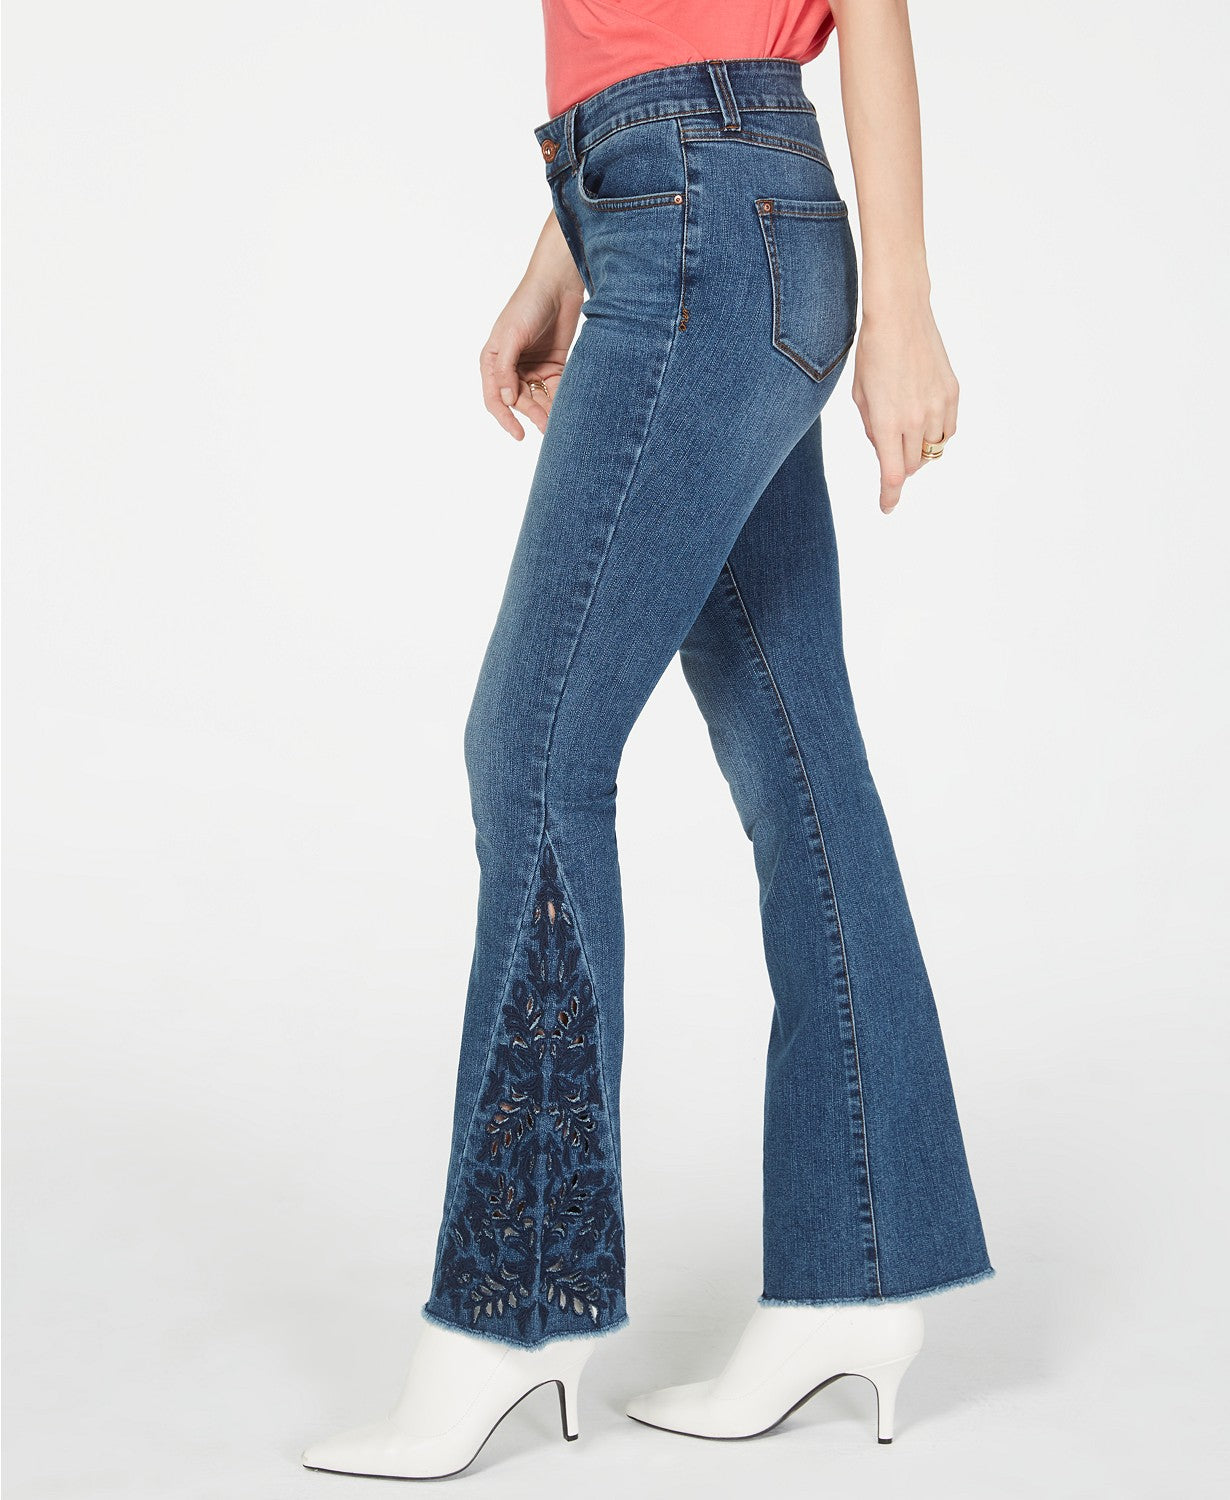 I.N.C. Embroidered Boot-Cut Jeans